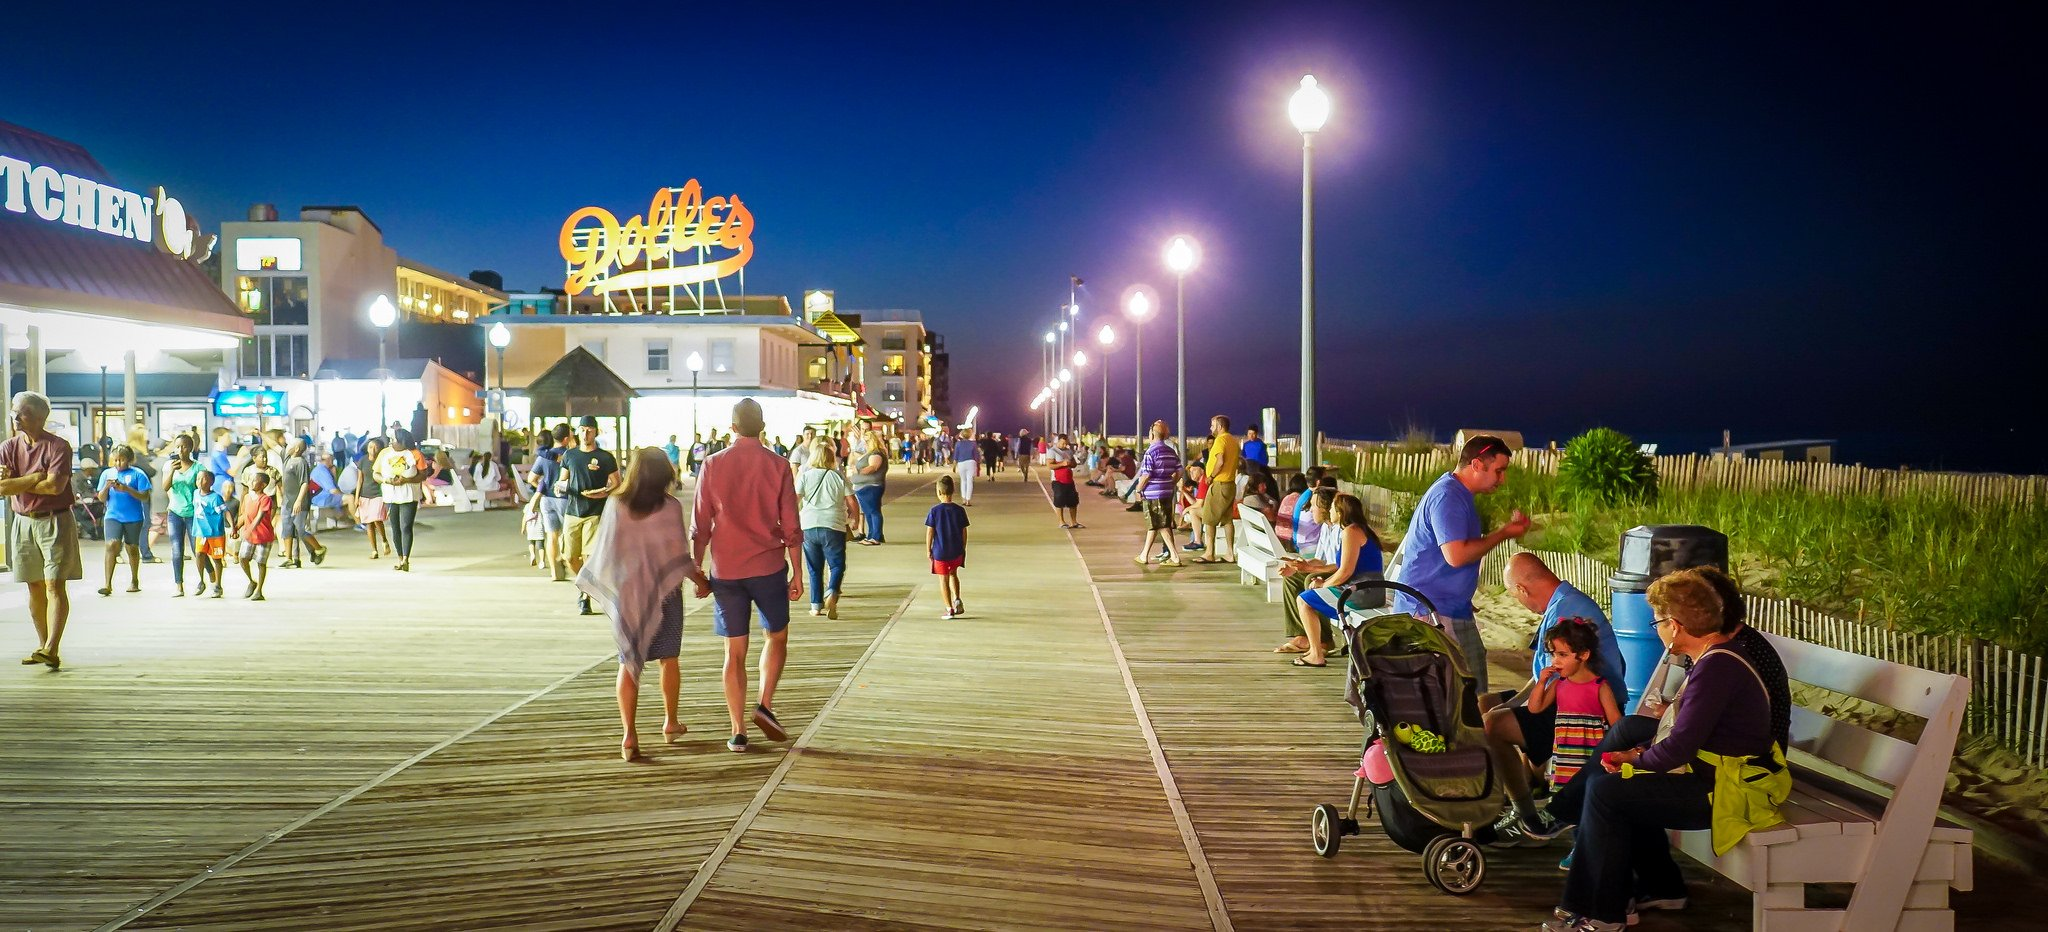 Rehoboth Beach boardwalk. Photograph by Ted Eytan from Unsplash.